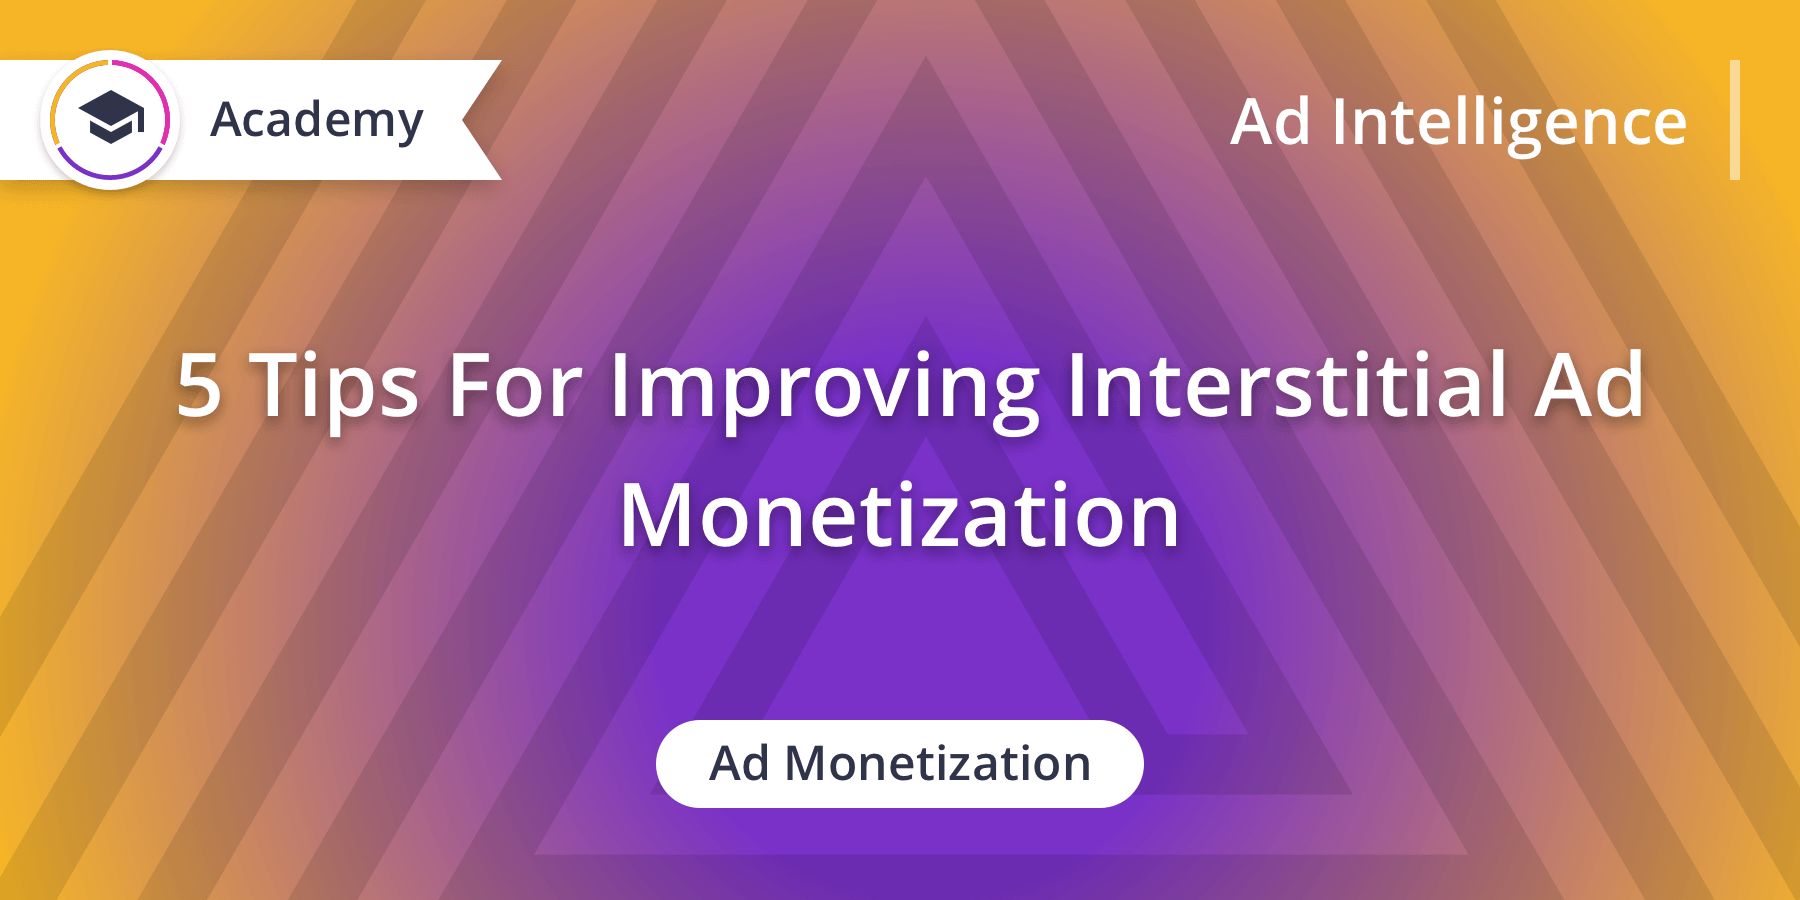 5 Tips for Improving Interstitial Ad Monetization